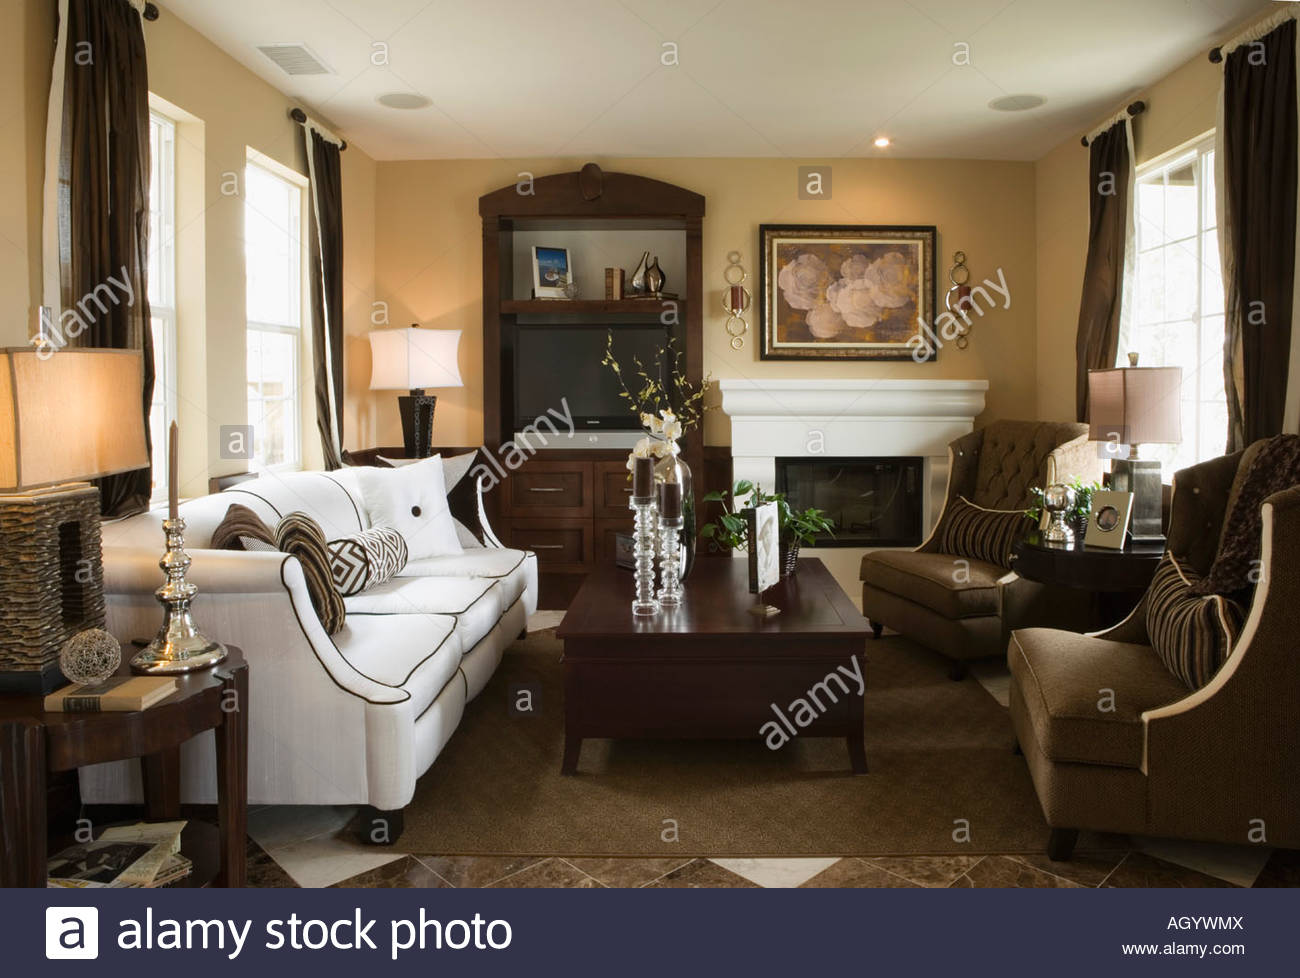 Cozy Living Room With Fireplace cozy living room with fireplace cozy living room and fireplace